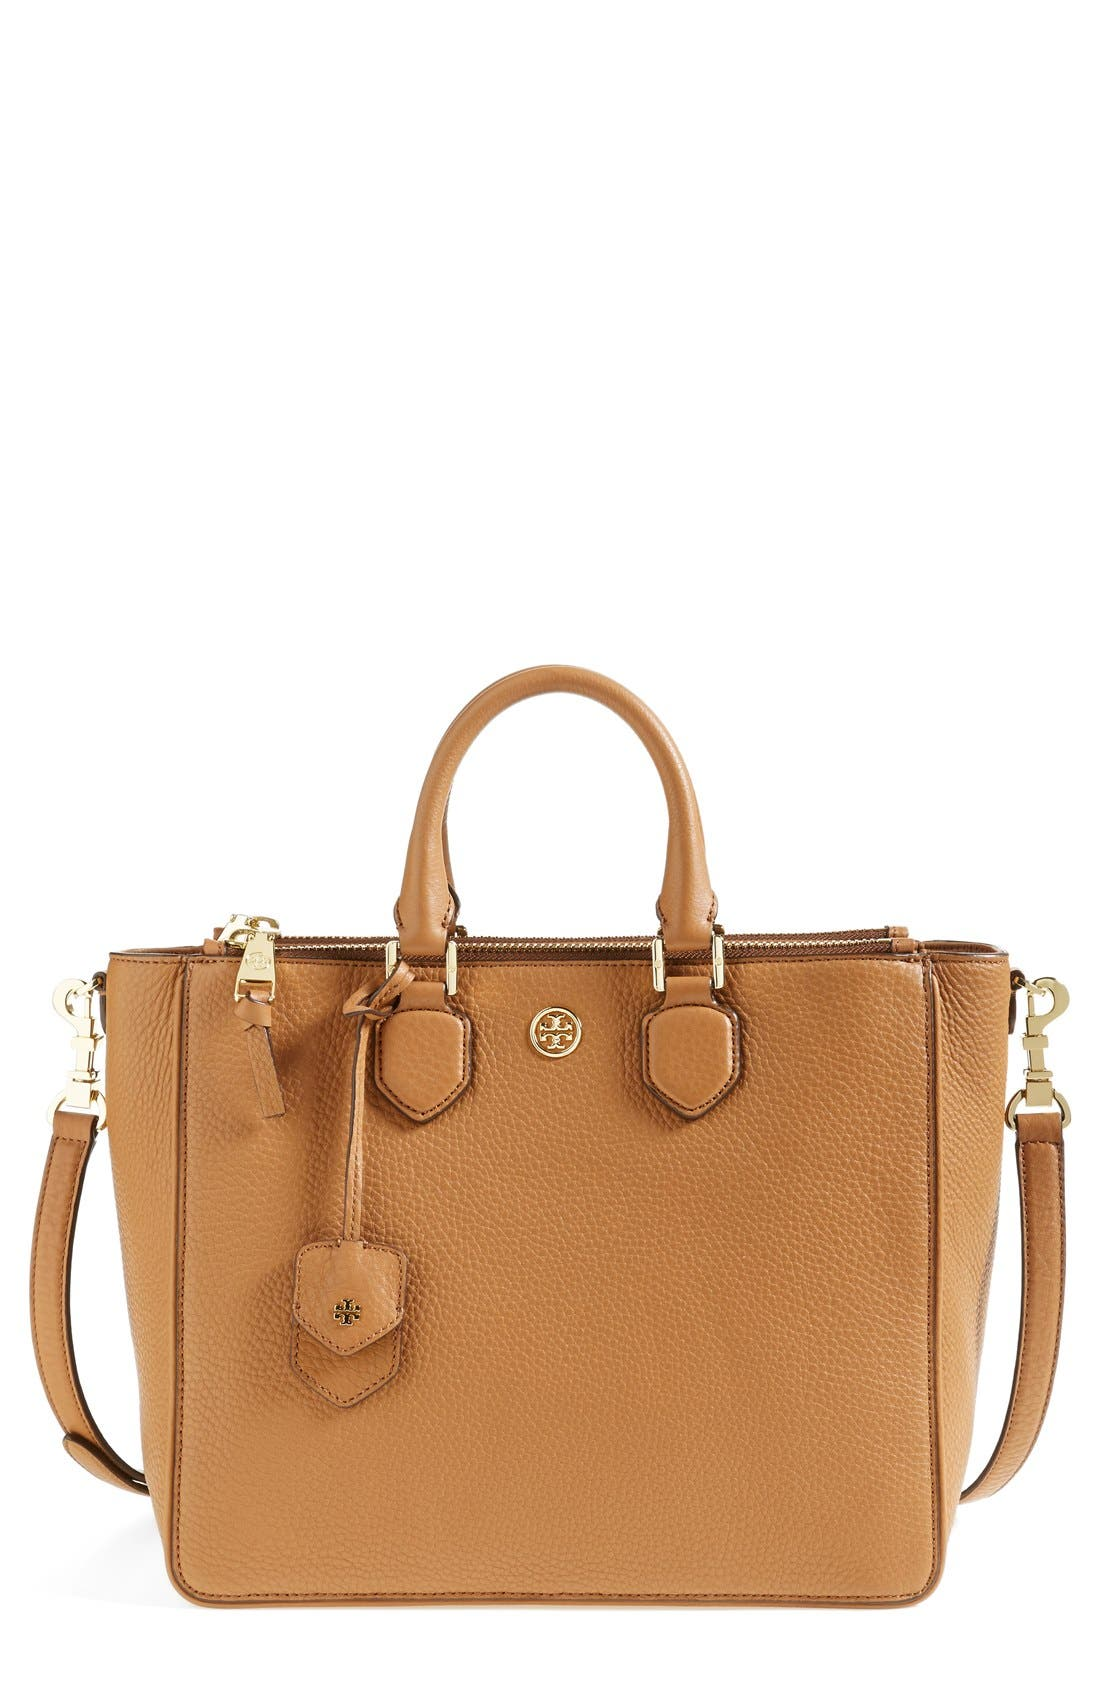 Alternate Image 1 Selected - Tory Burch 'Robinson' Tote